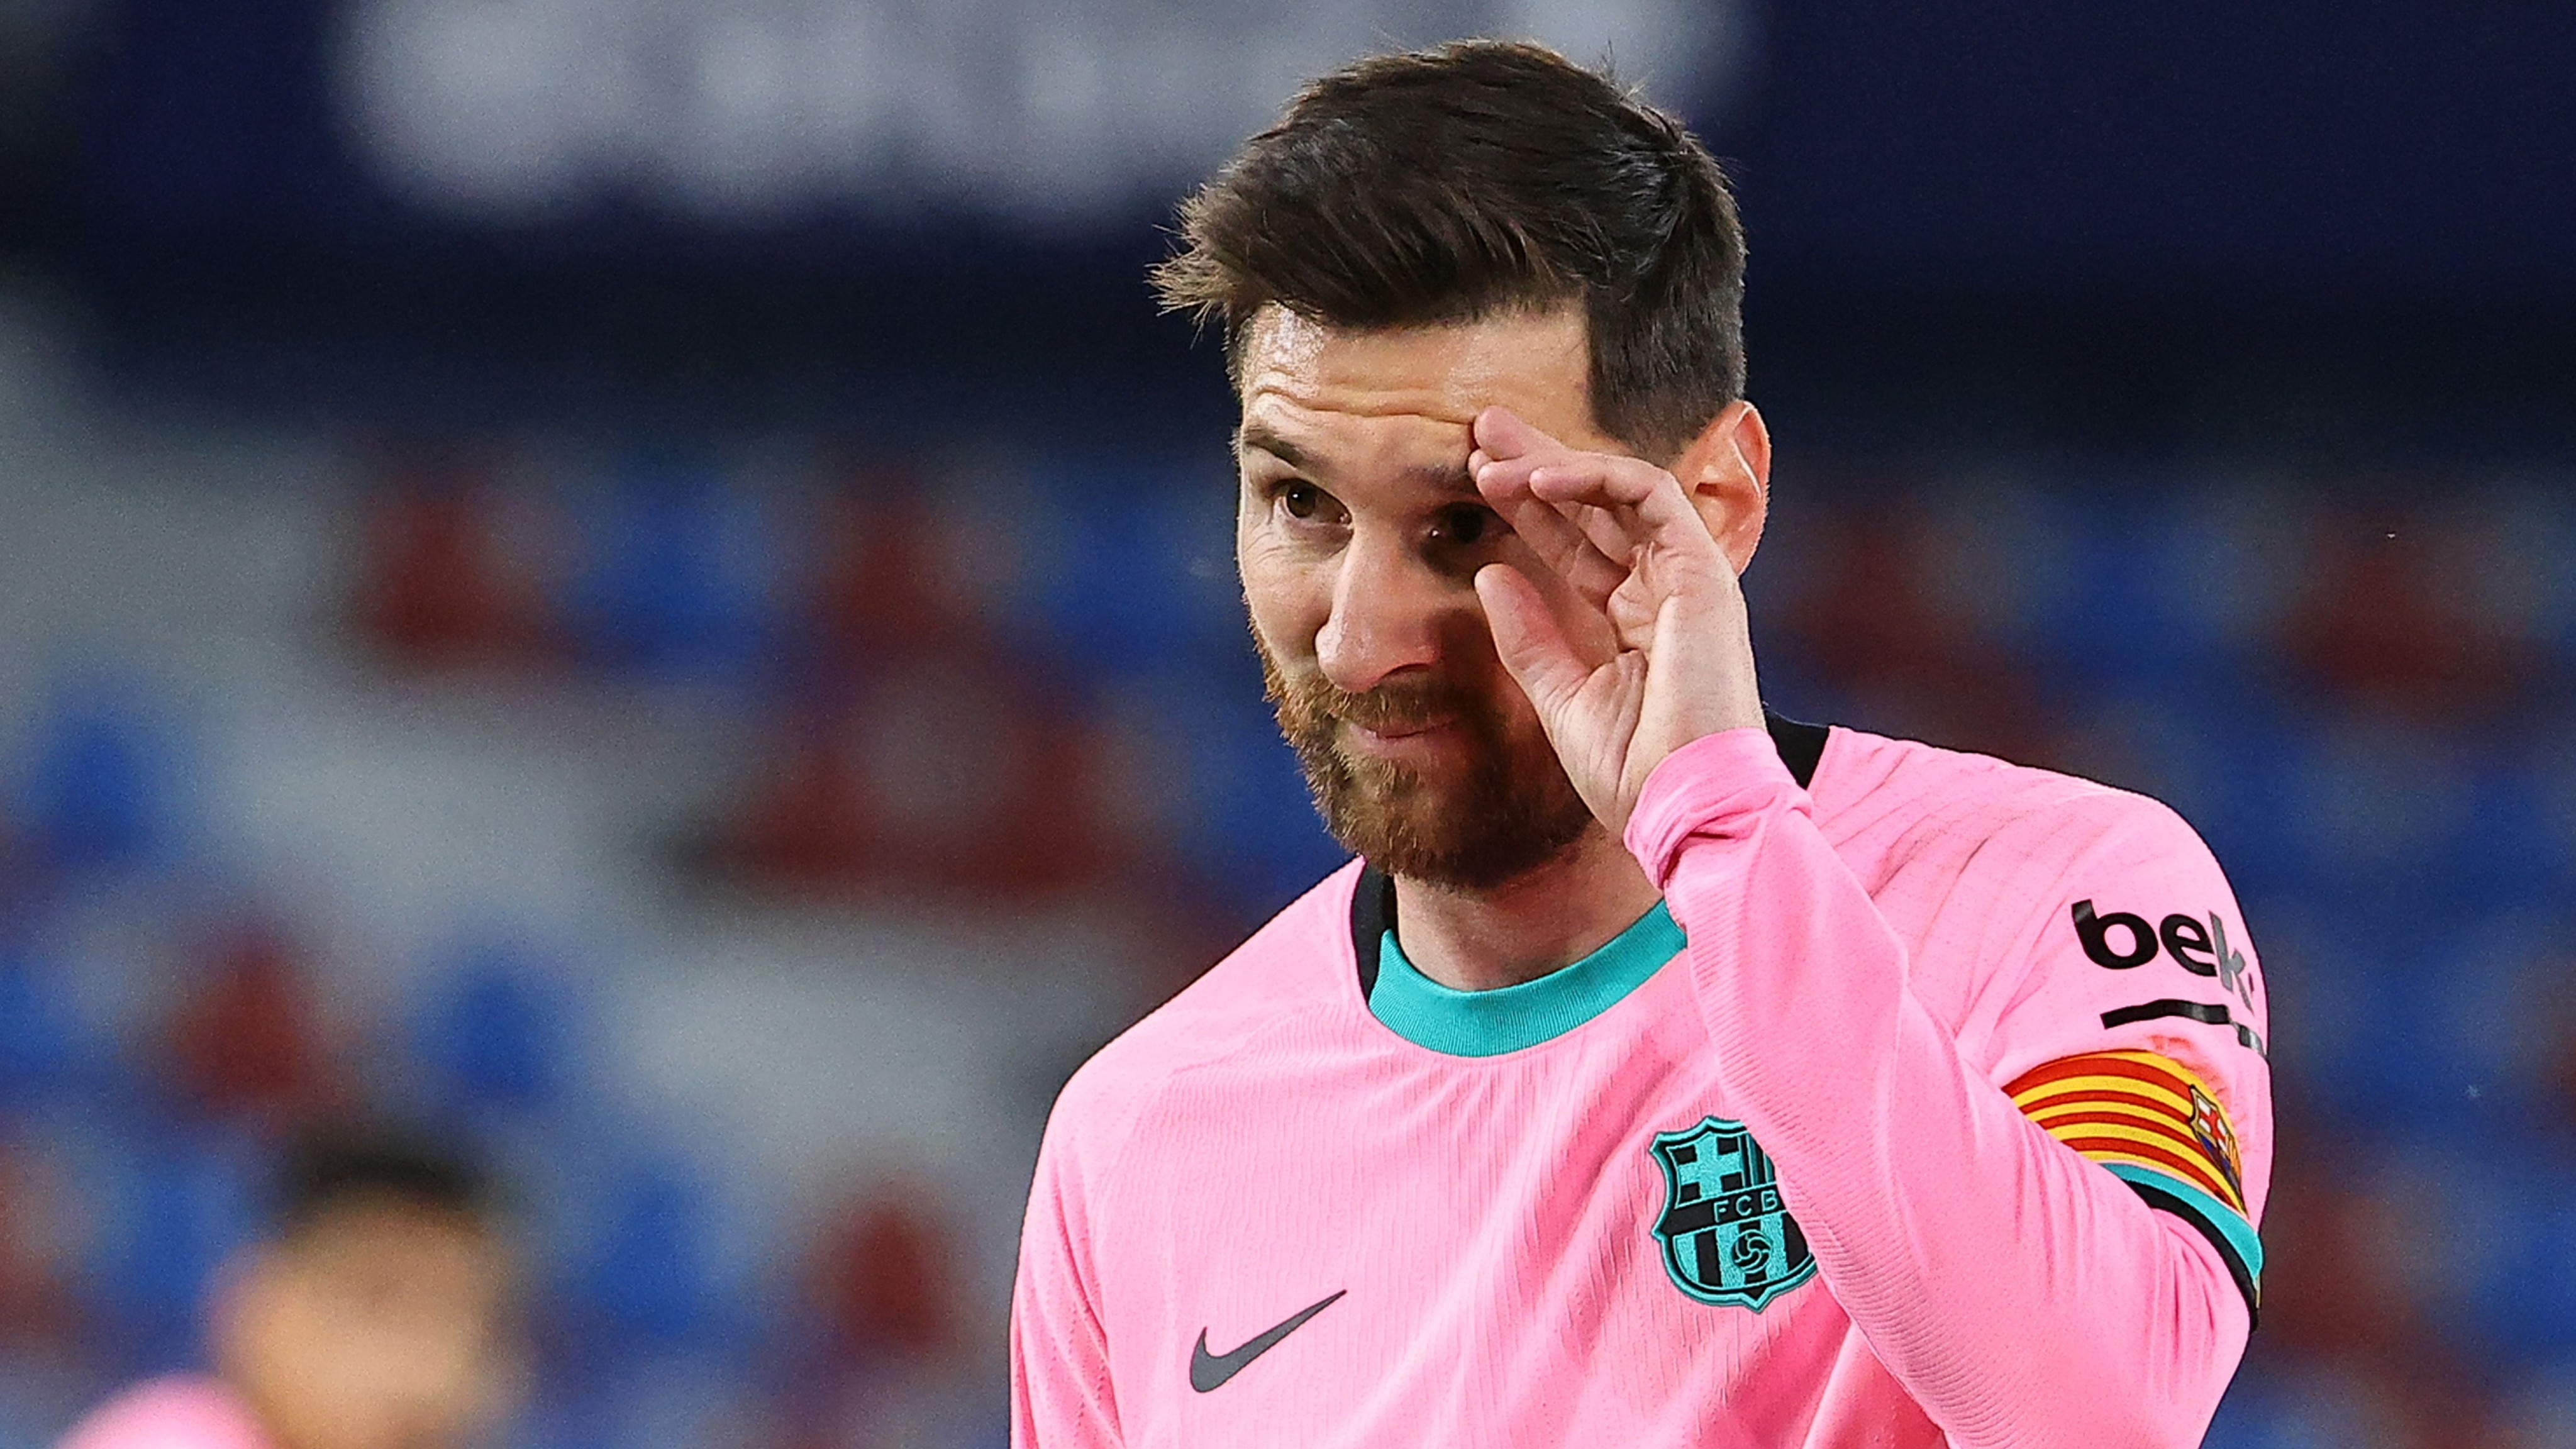 Eto'o would take Real Madrid icon Ramos to Barcelona & remains confident on Messi contract